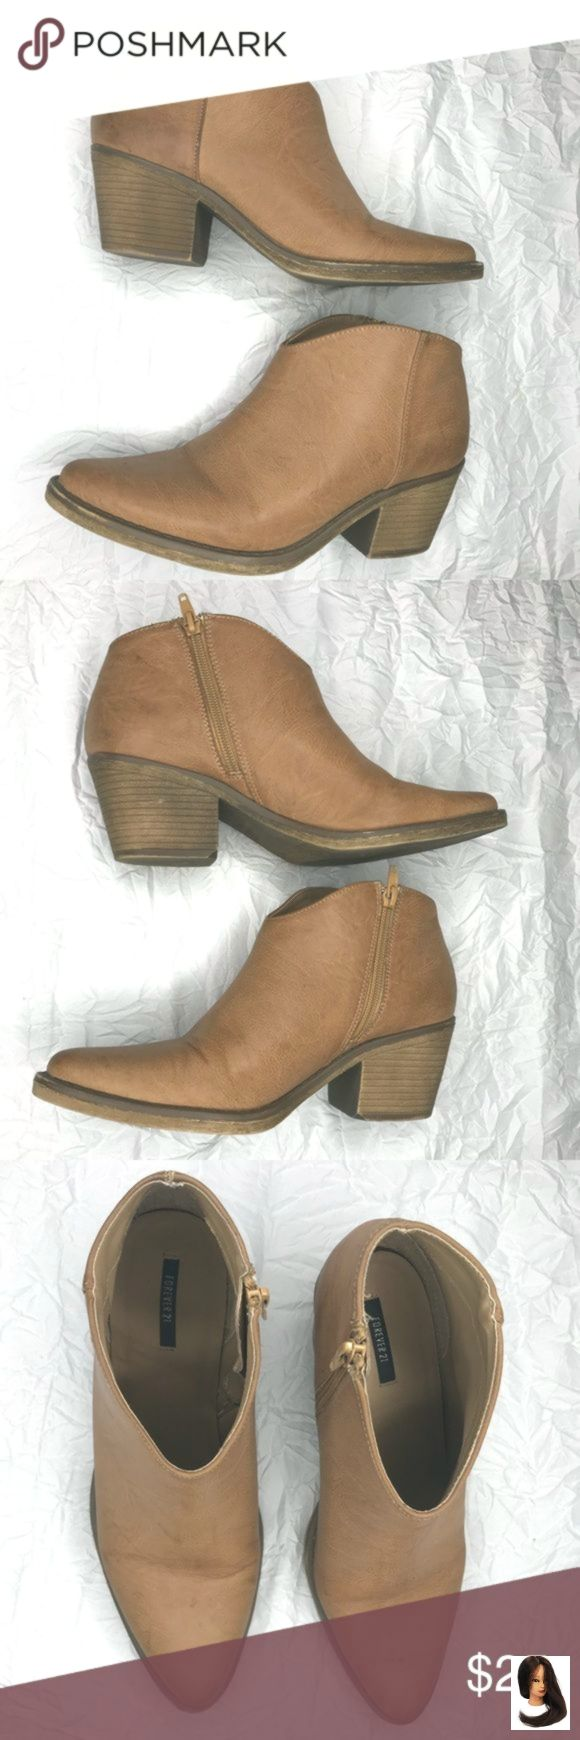 #Absatz #Ankle #auch #Back To School Outfit heels #booties #Ca